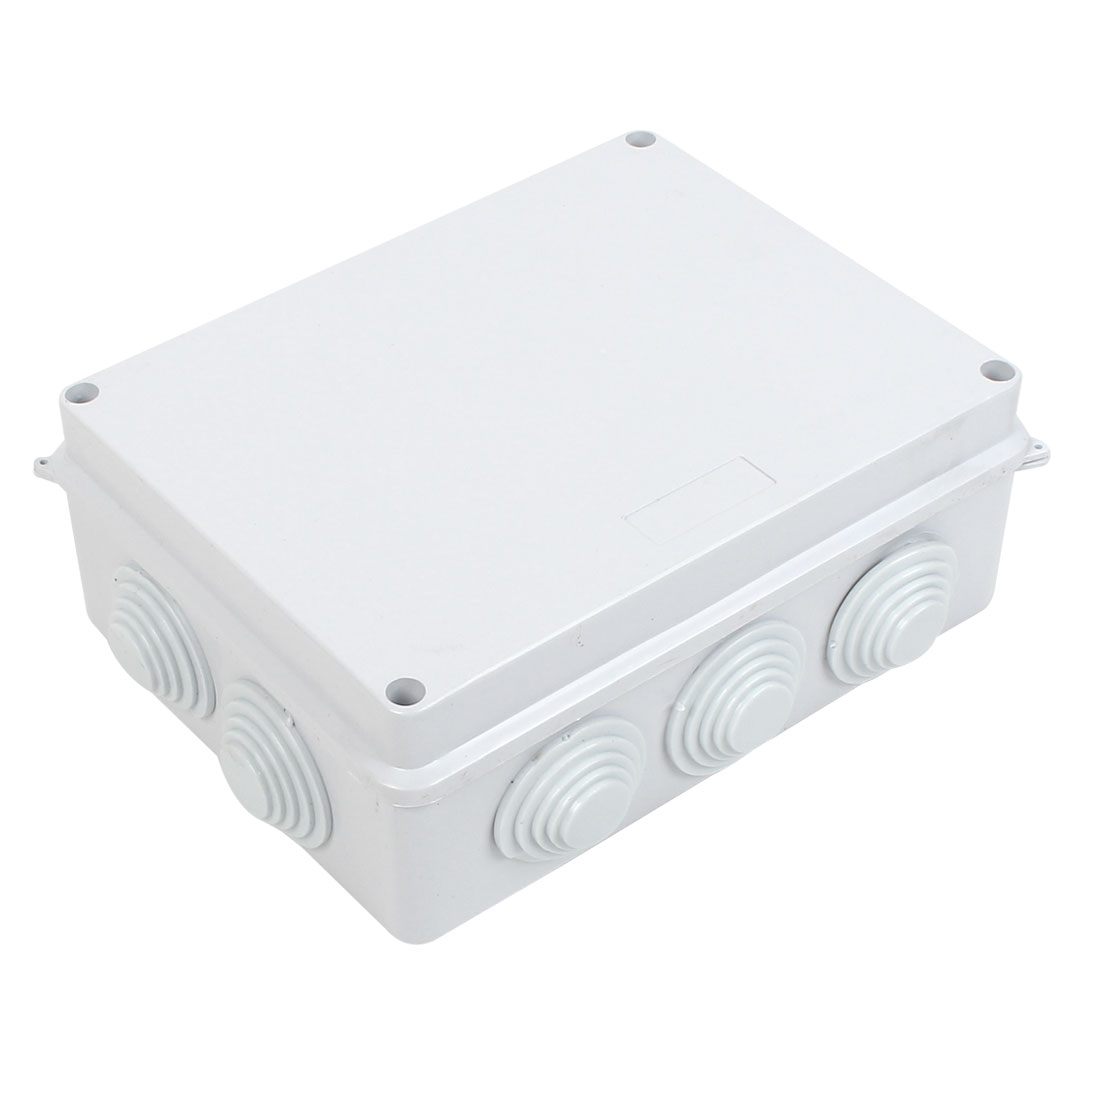 White ABS Dustproof IP65 EnClosure Junction Box 200mmx155mmx80mm